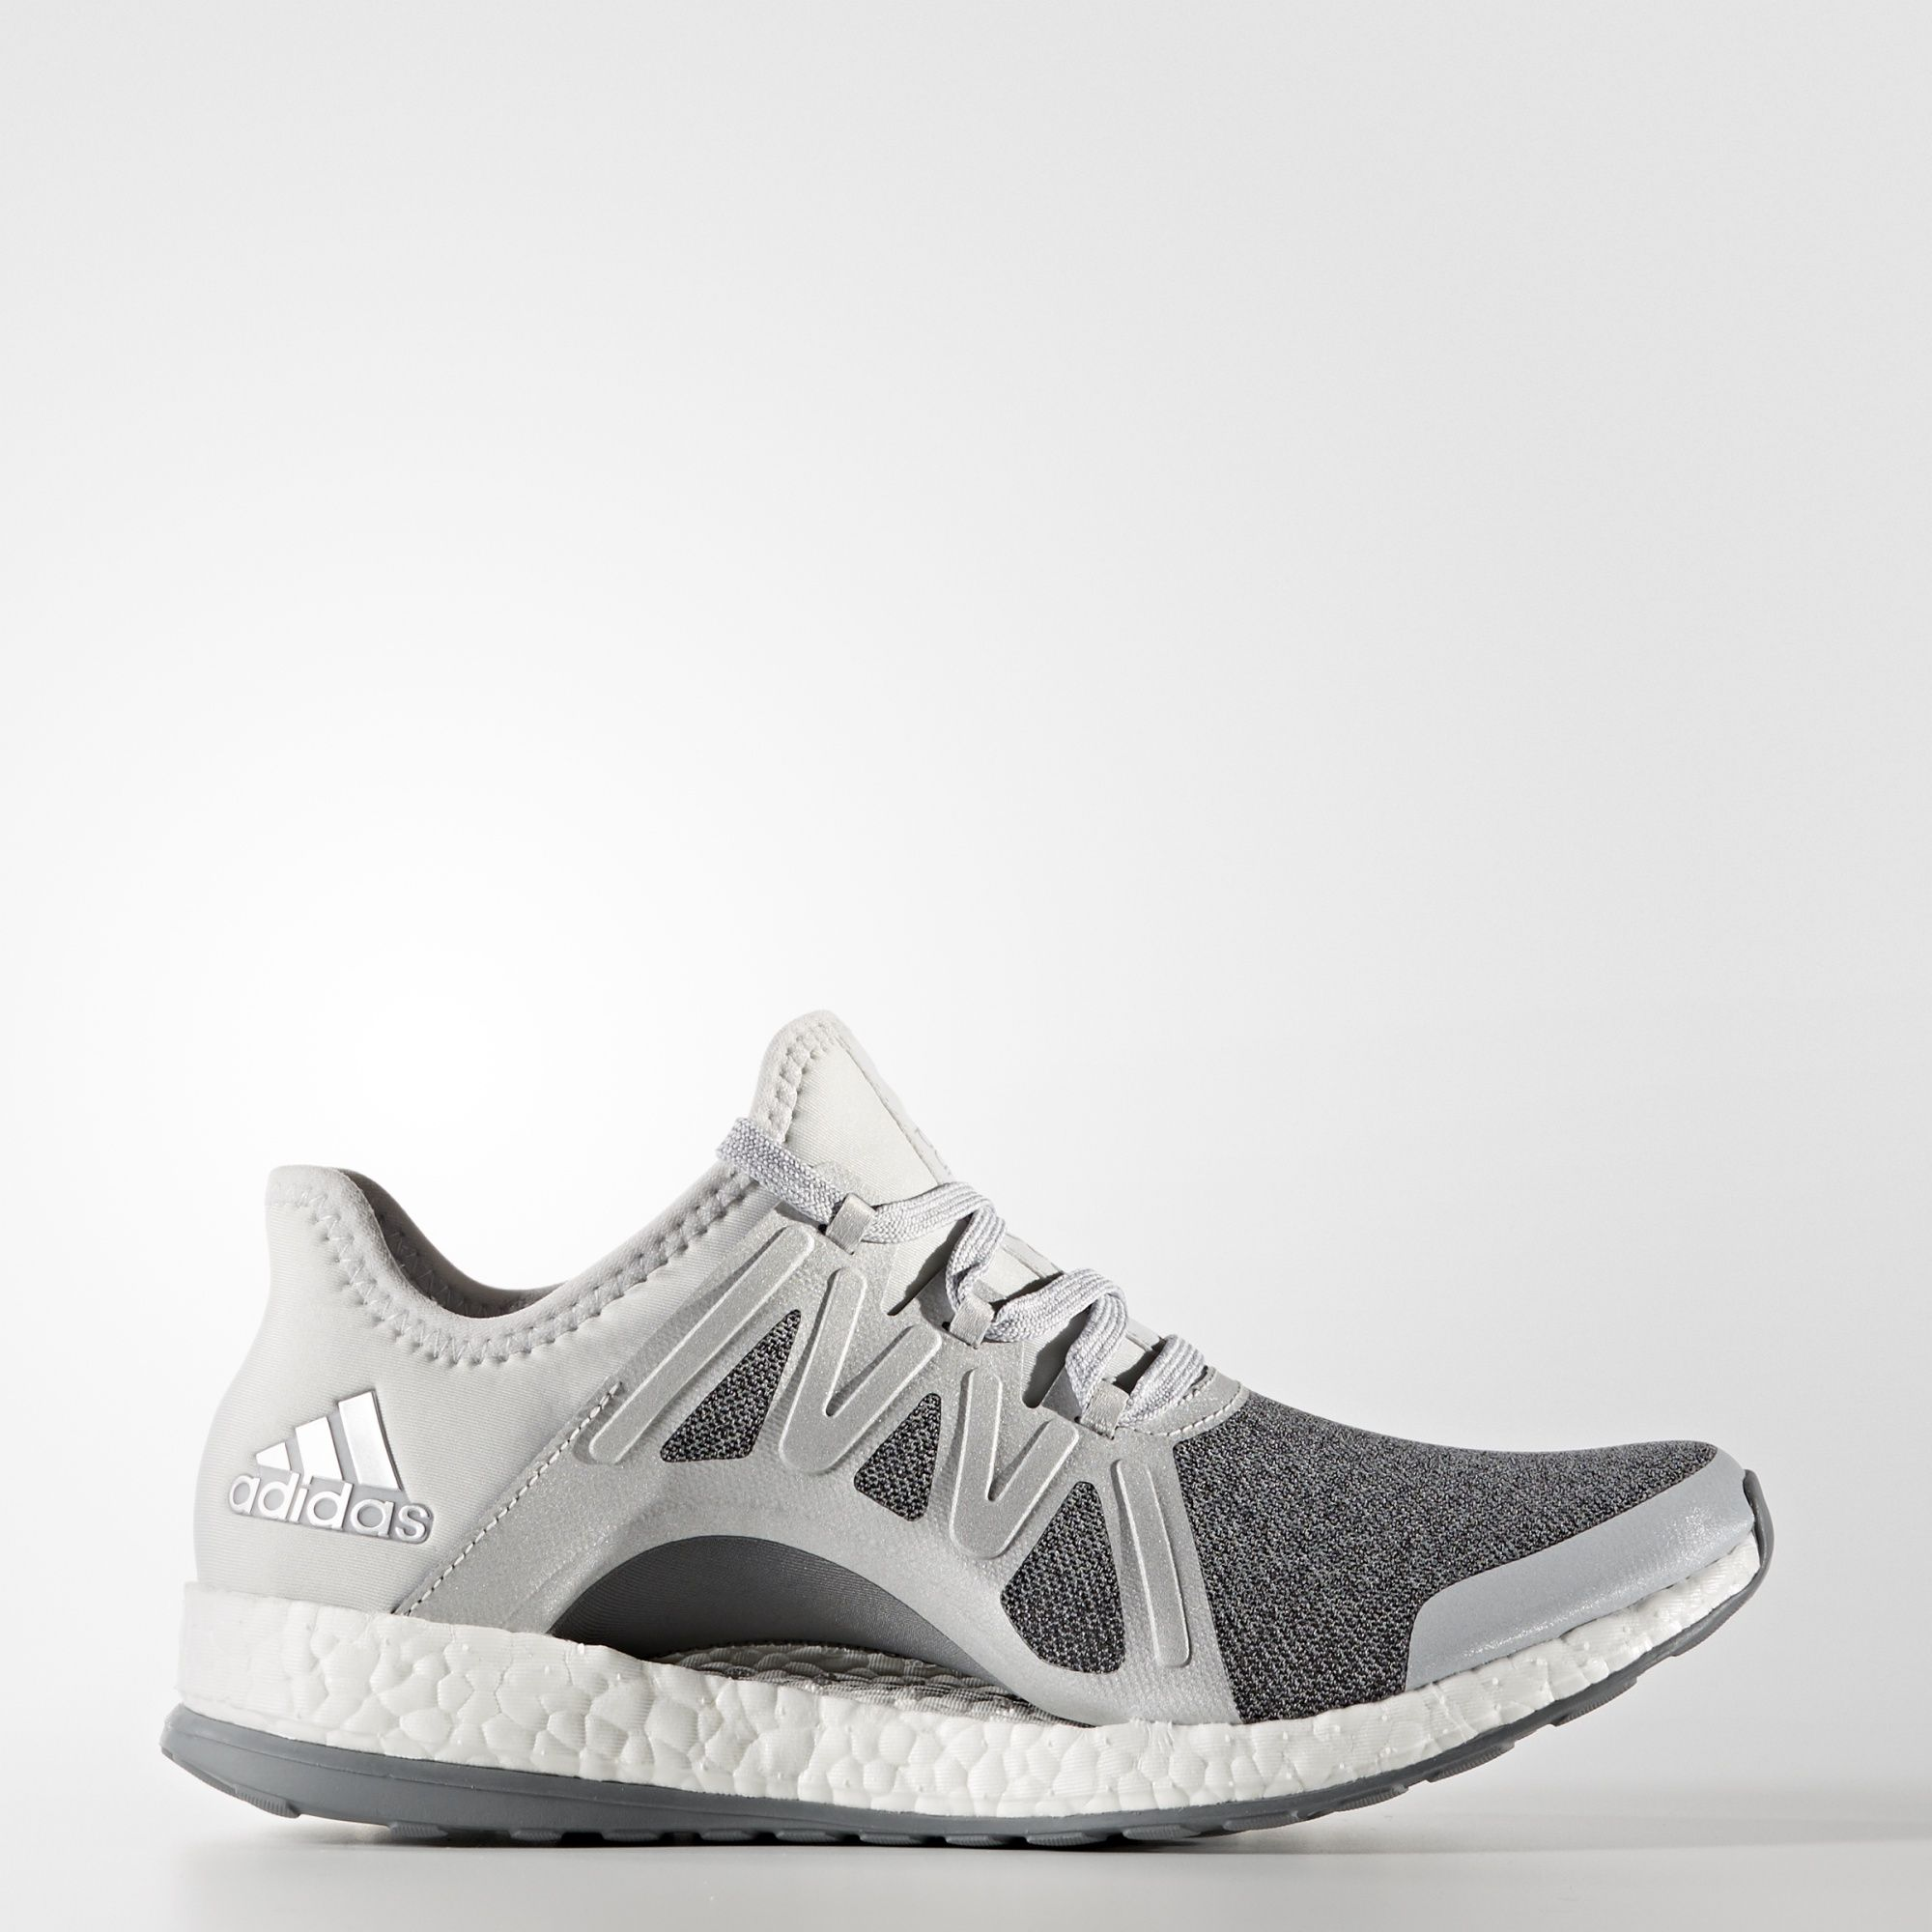 adidas PureBOOST Xpose Shoes - Grey | adidas US